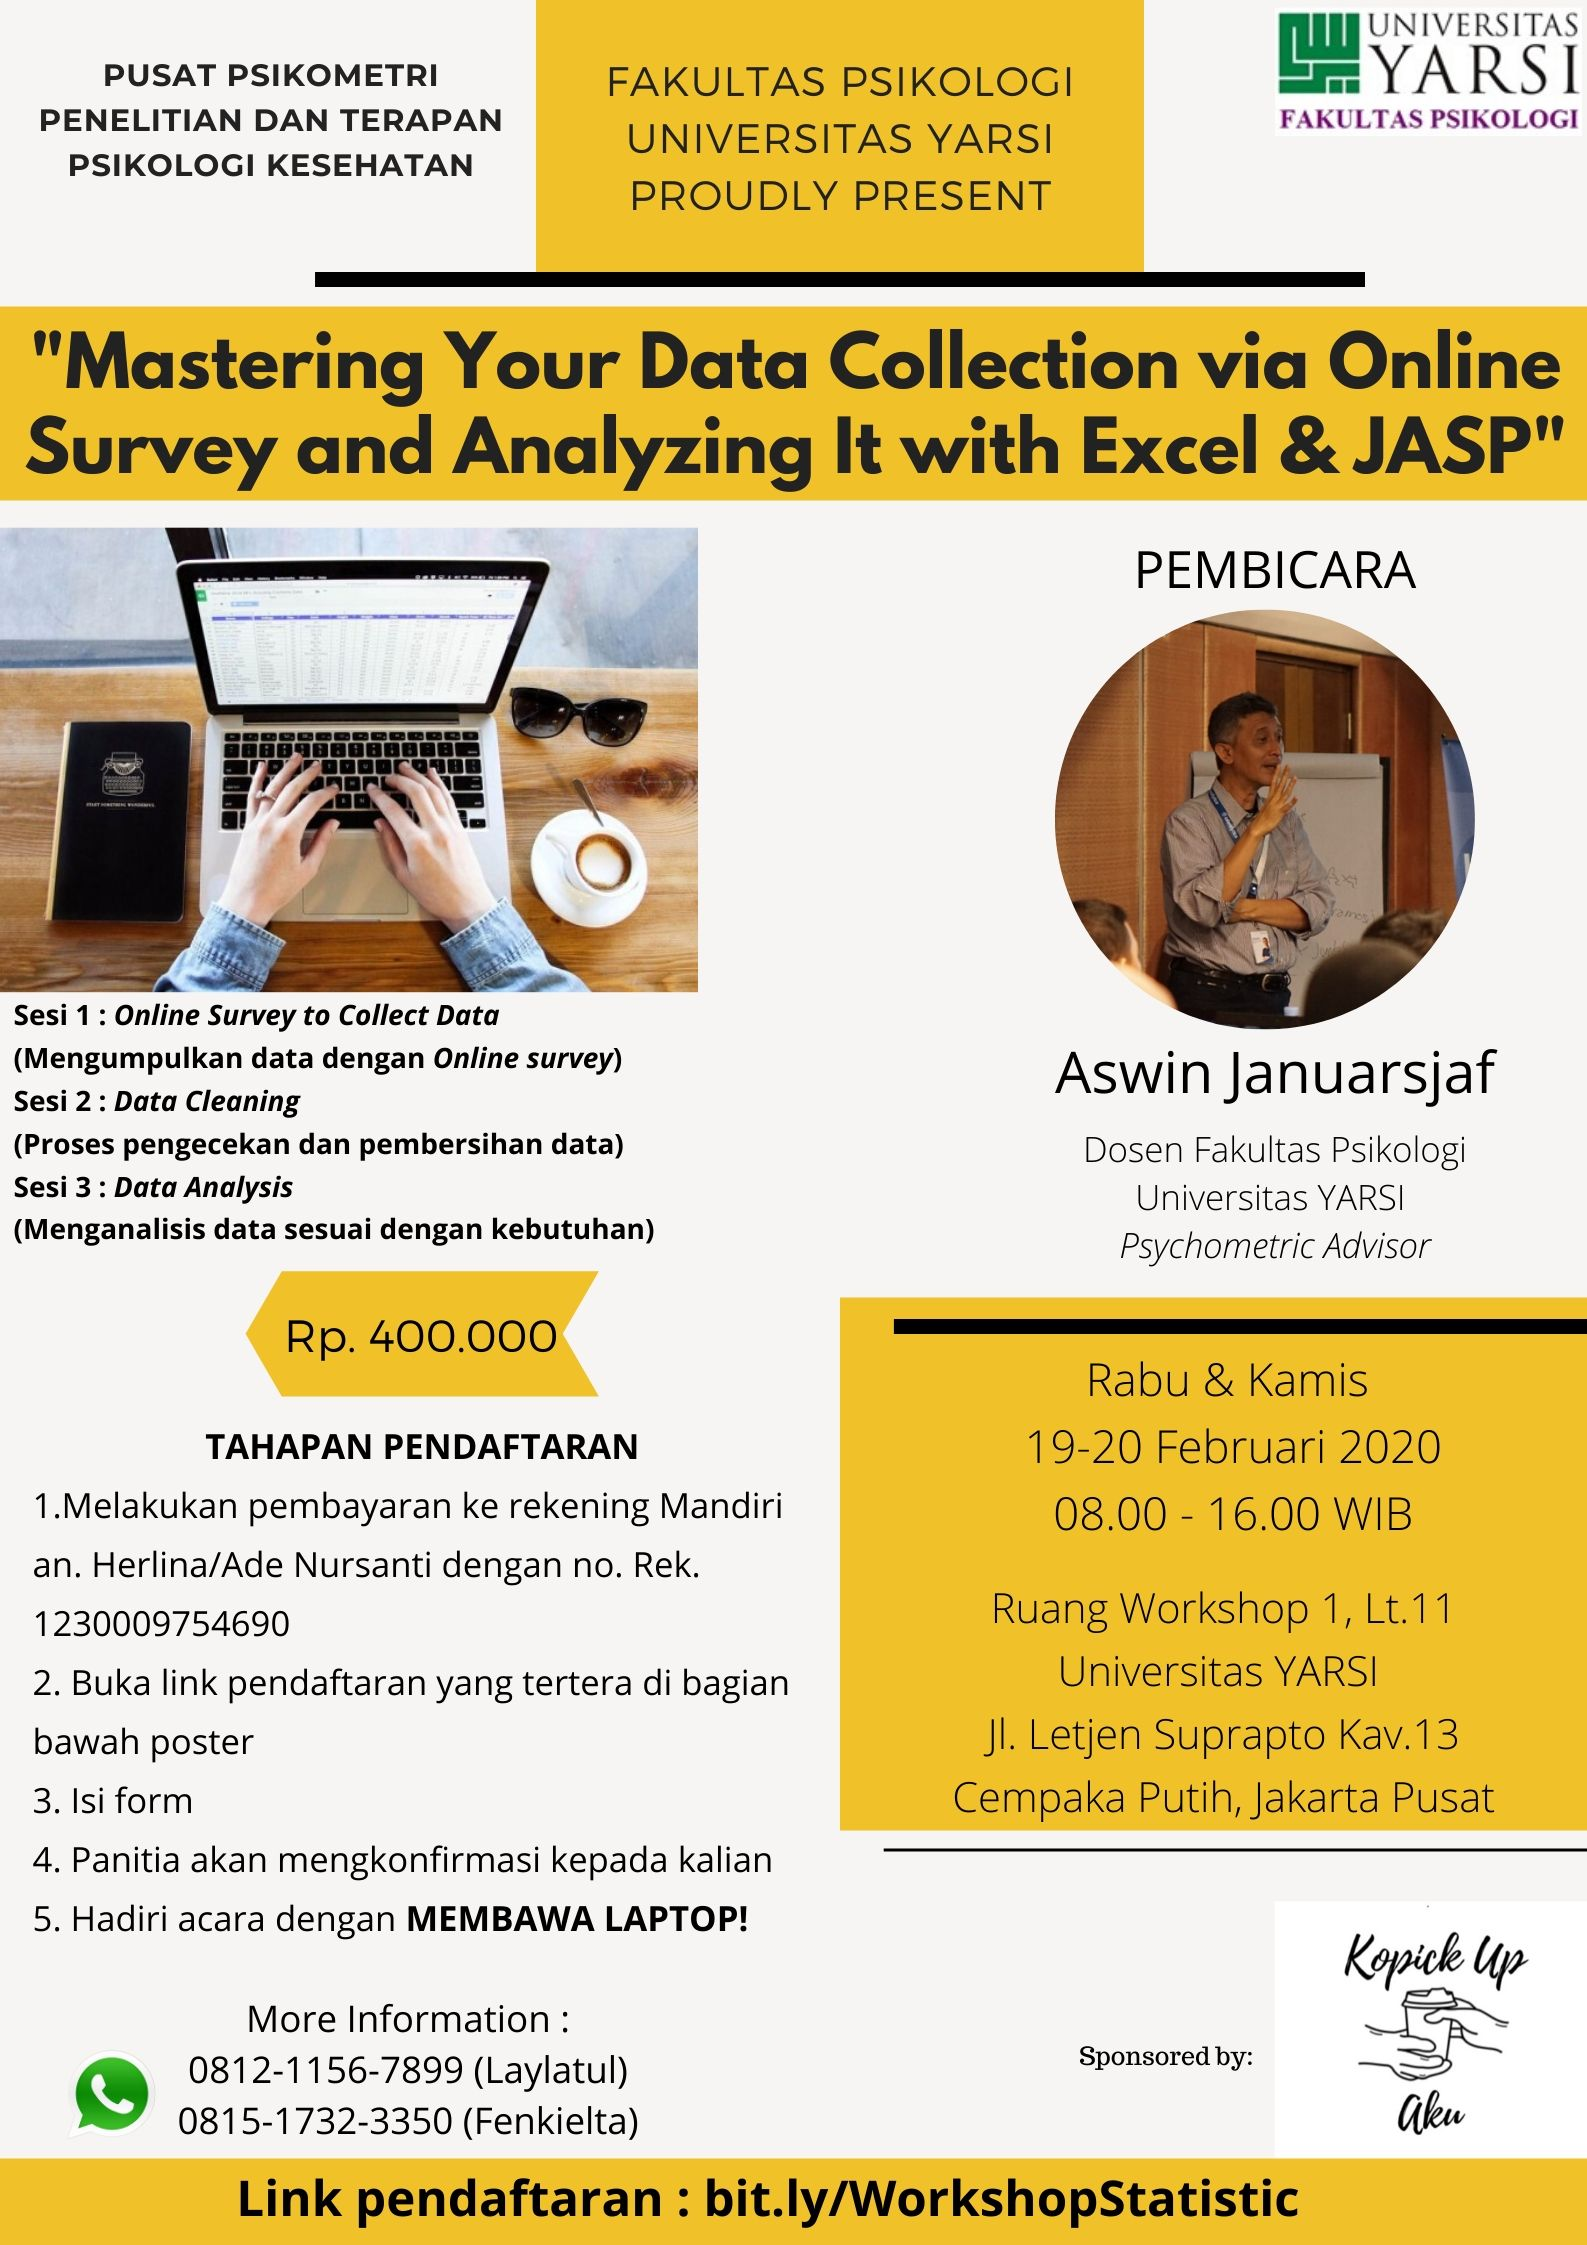 MASTERING YOUR DATA COLLECTION VIA ONLINE SURVEY DAN ANALYZING IT WITH EXCEL AND JASP